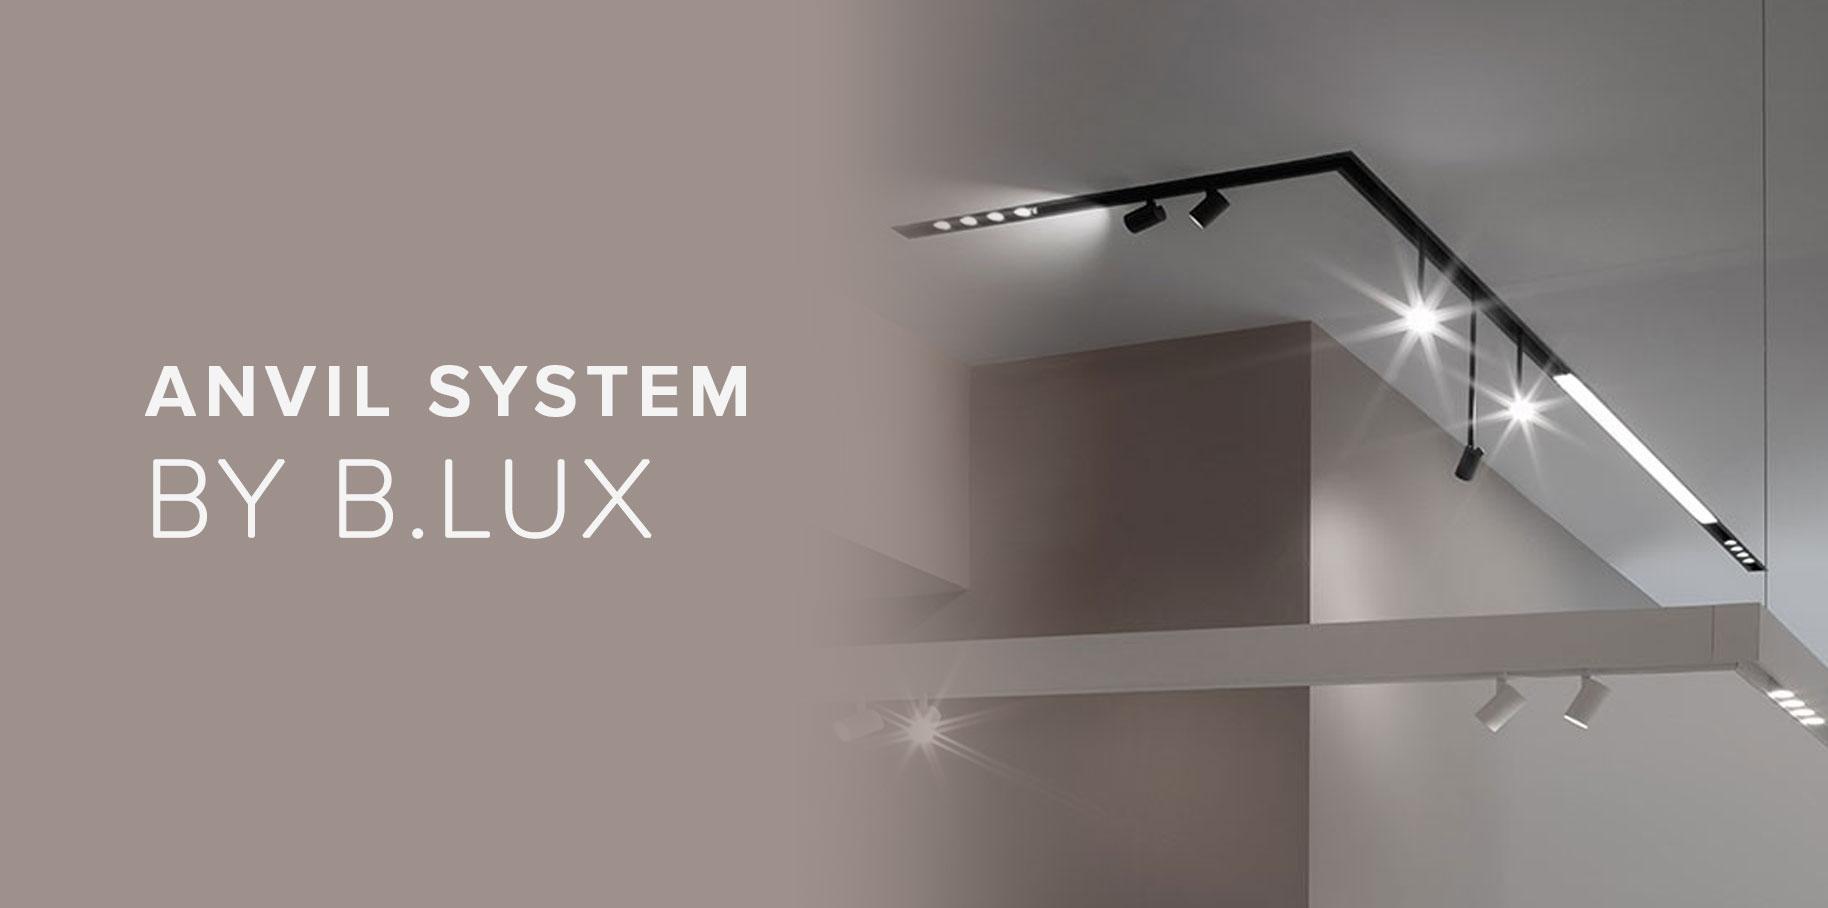 Anvil System by B.Lux